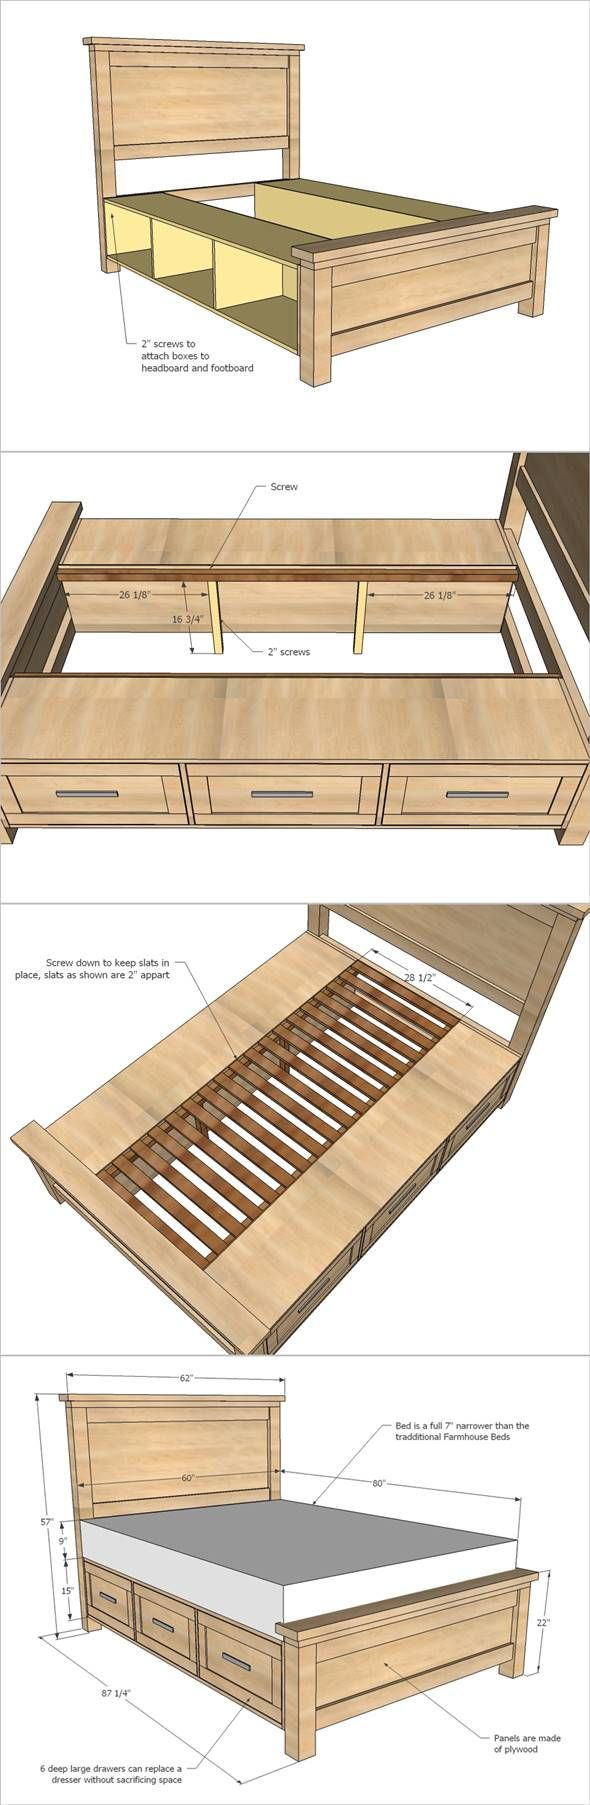 how to build a farmhouse storage bed with drawers furniture bed space bespoke furniture space saving furniture wooden